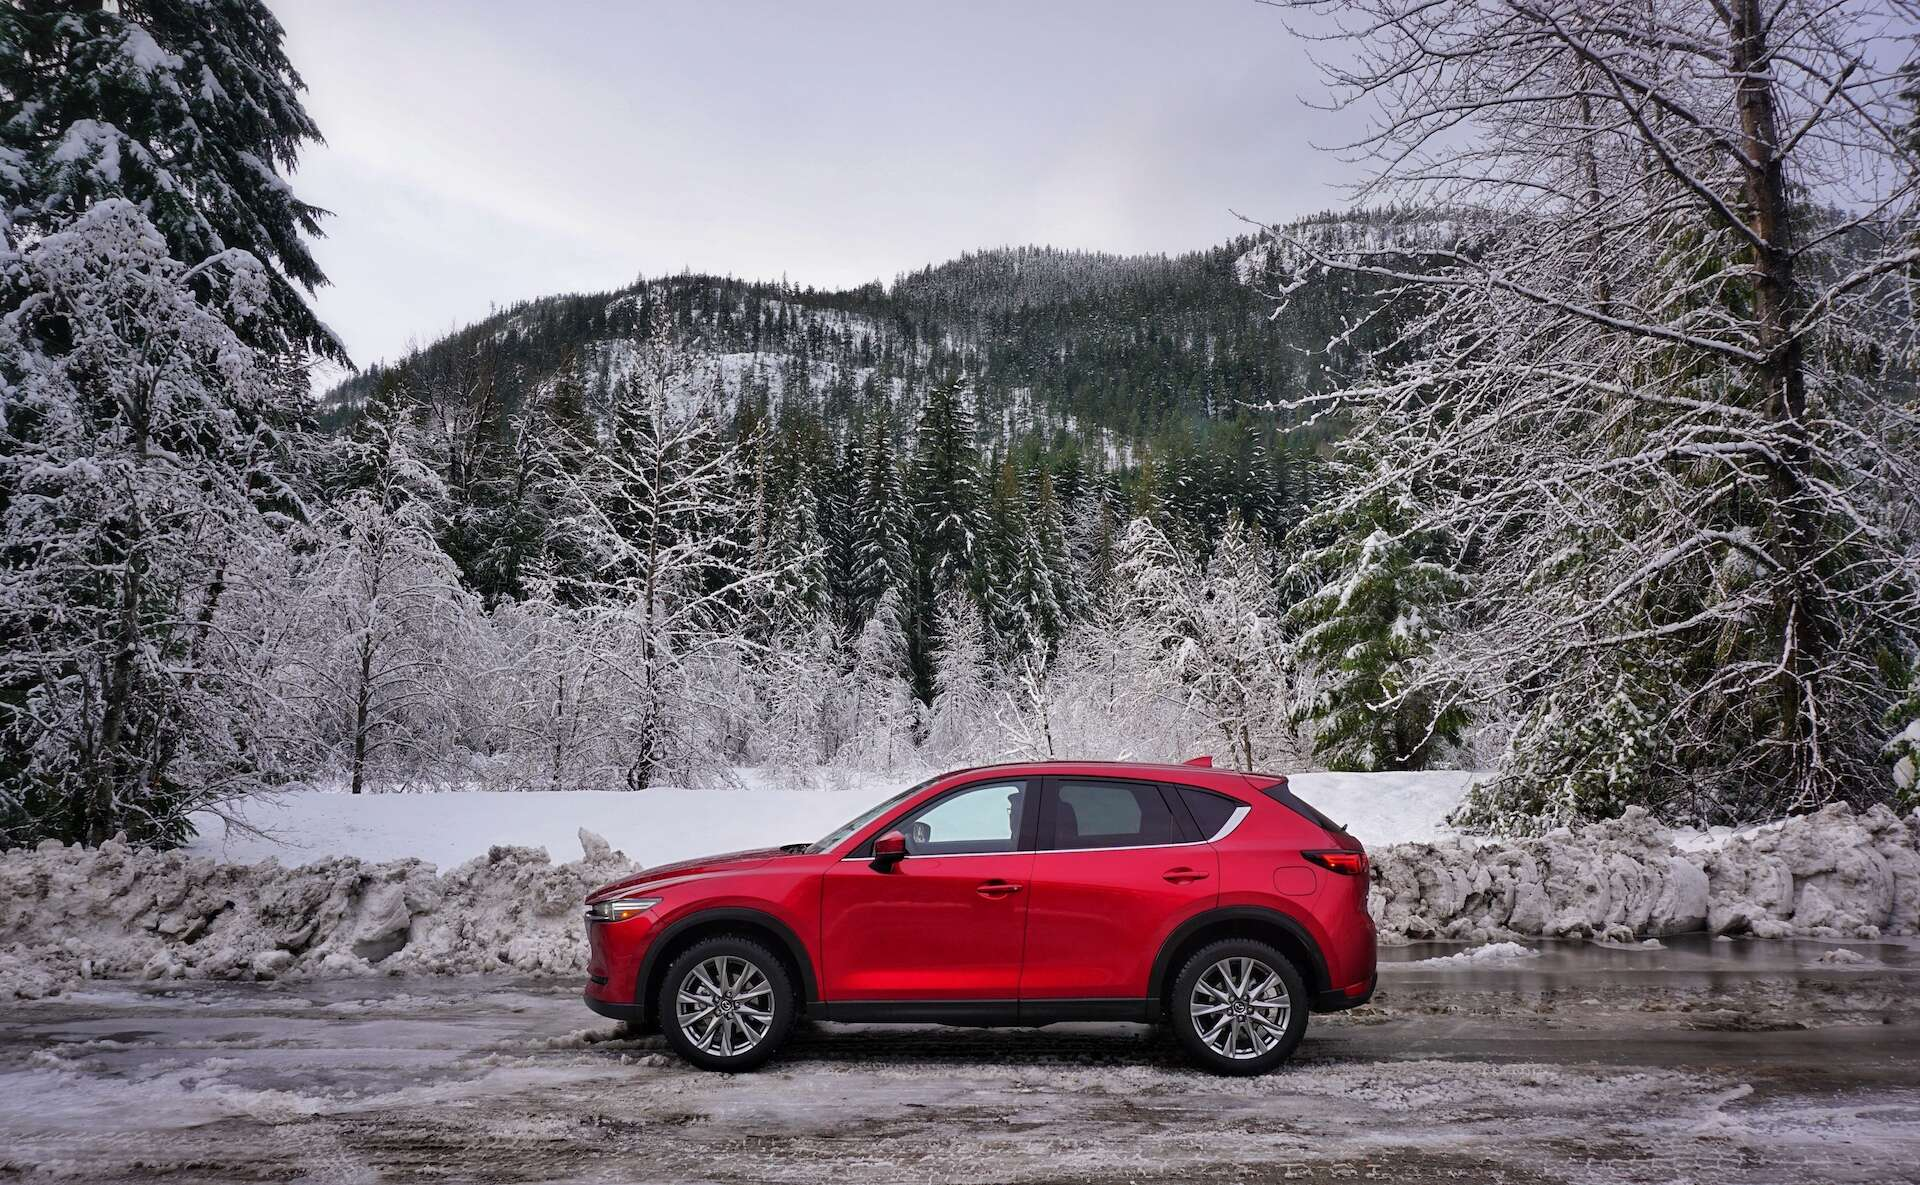 2019 Mazda Cx 5 First Drive Turbocharged Power And A Swanky